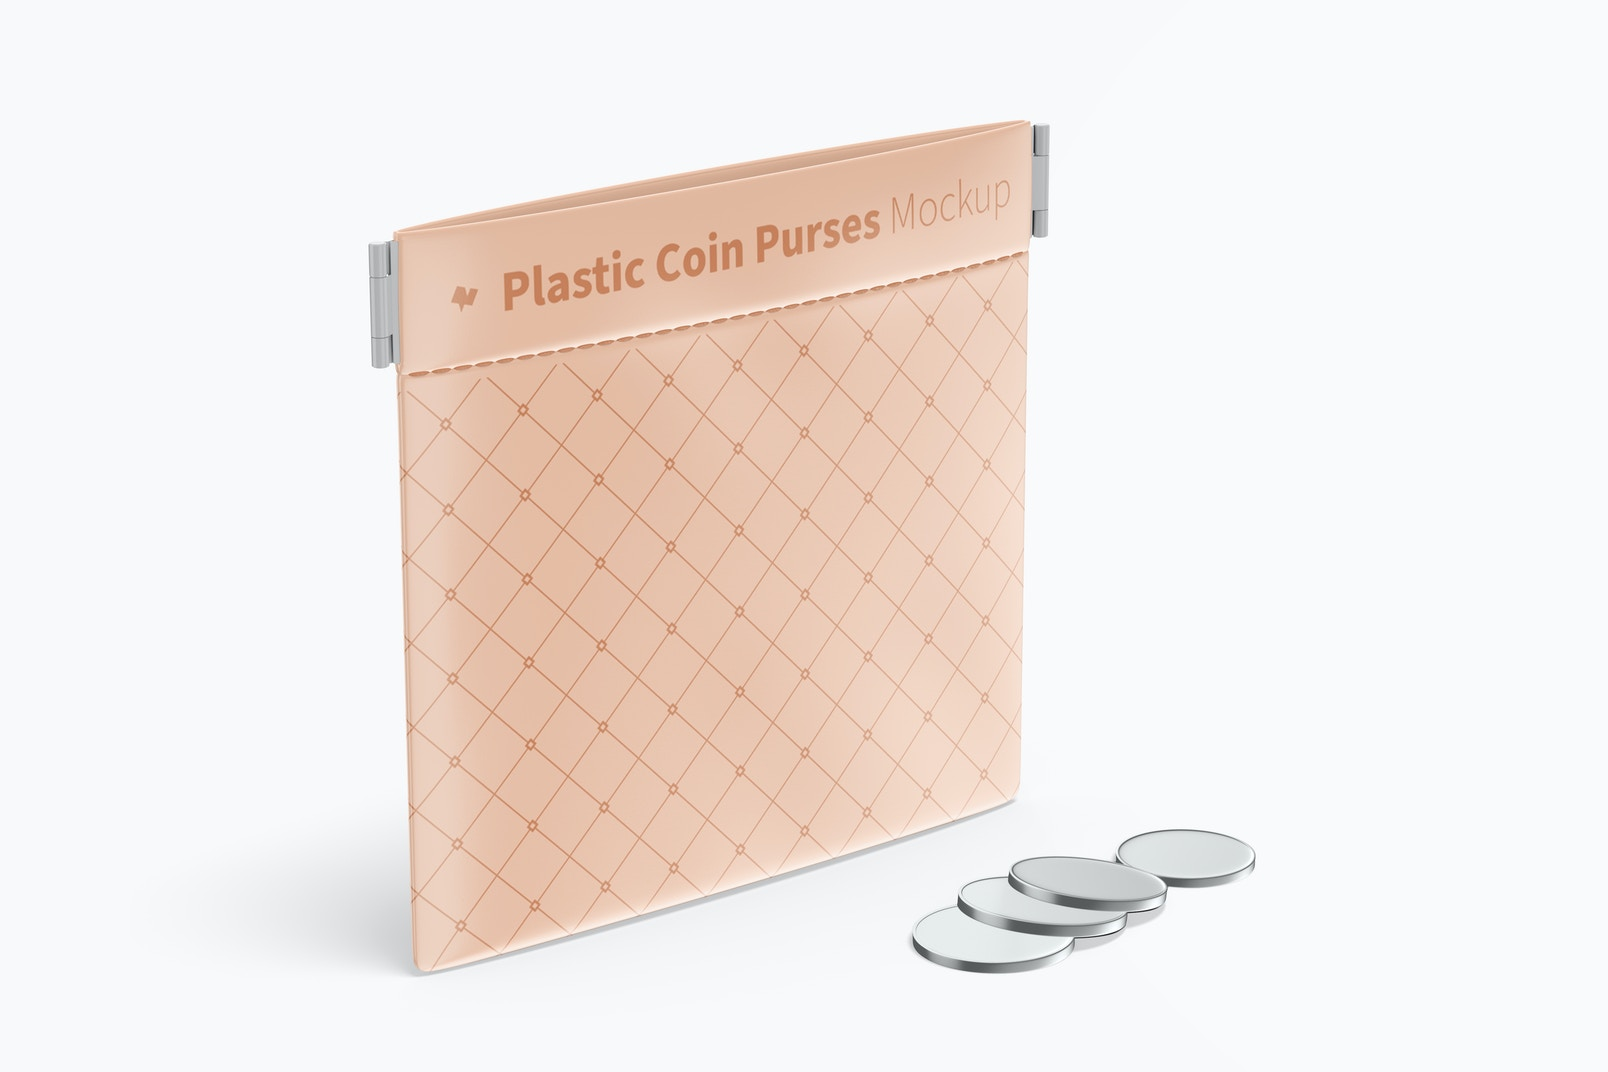 Plastic Coin Purse Mockup, Perspective